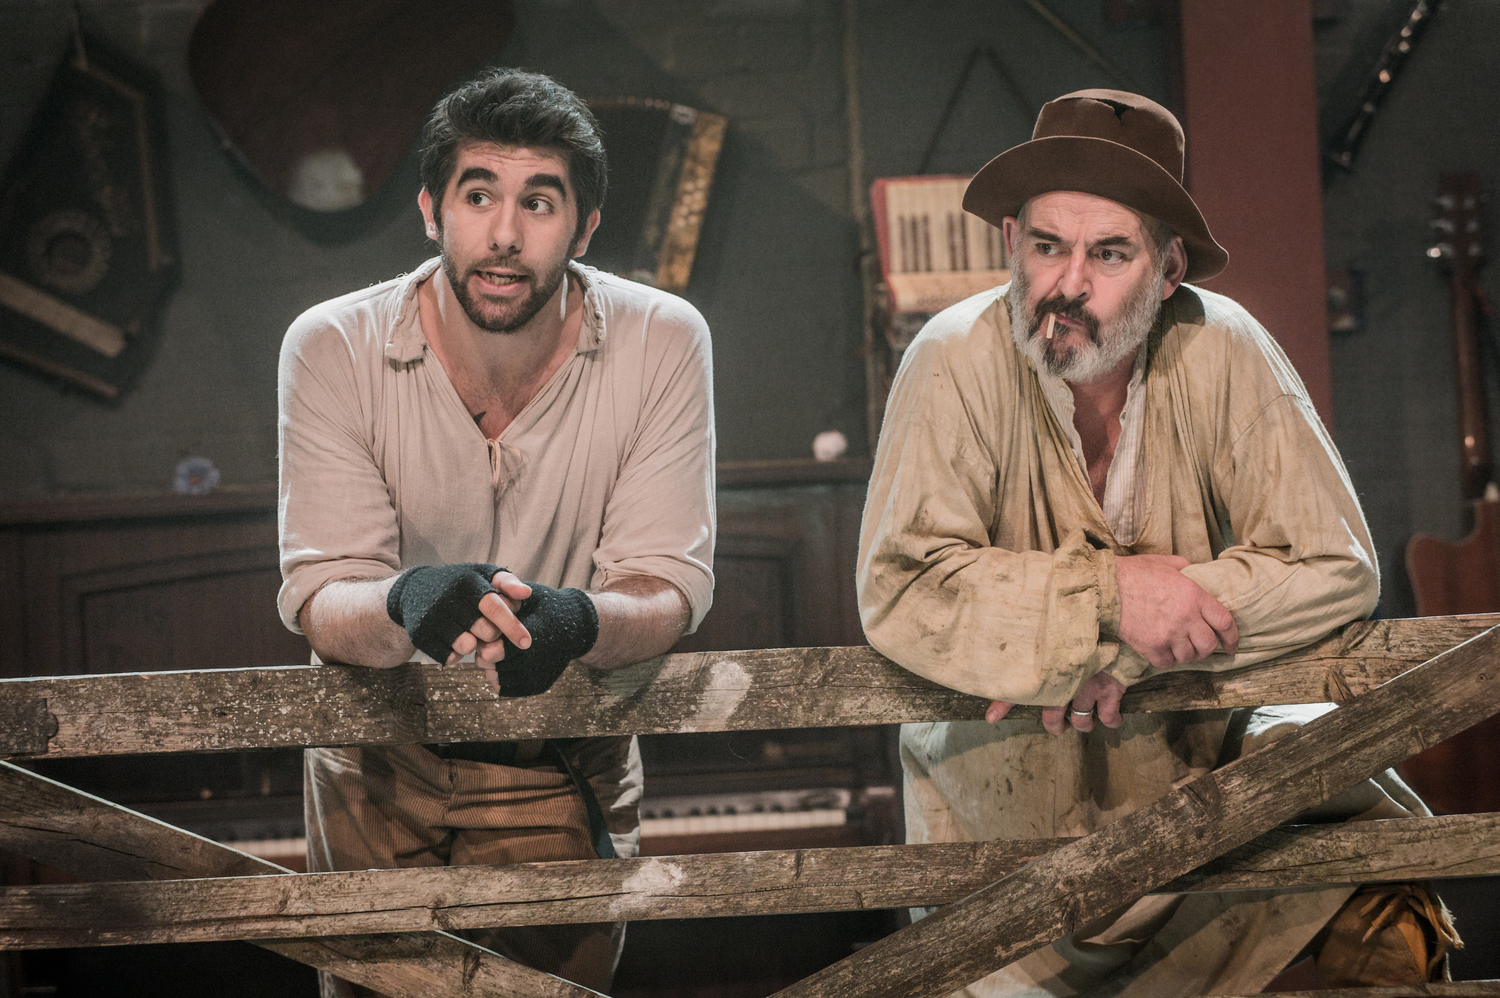 Simon Lipkin & Richard Albrecht in As You Like It, composed by Jude Obermüller (photo by Robert Workman)